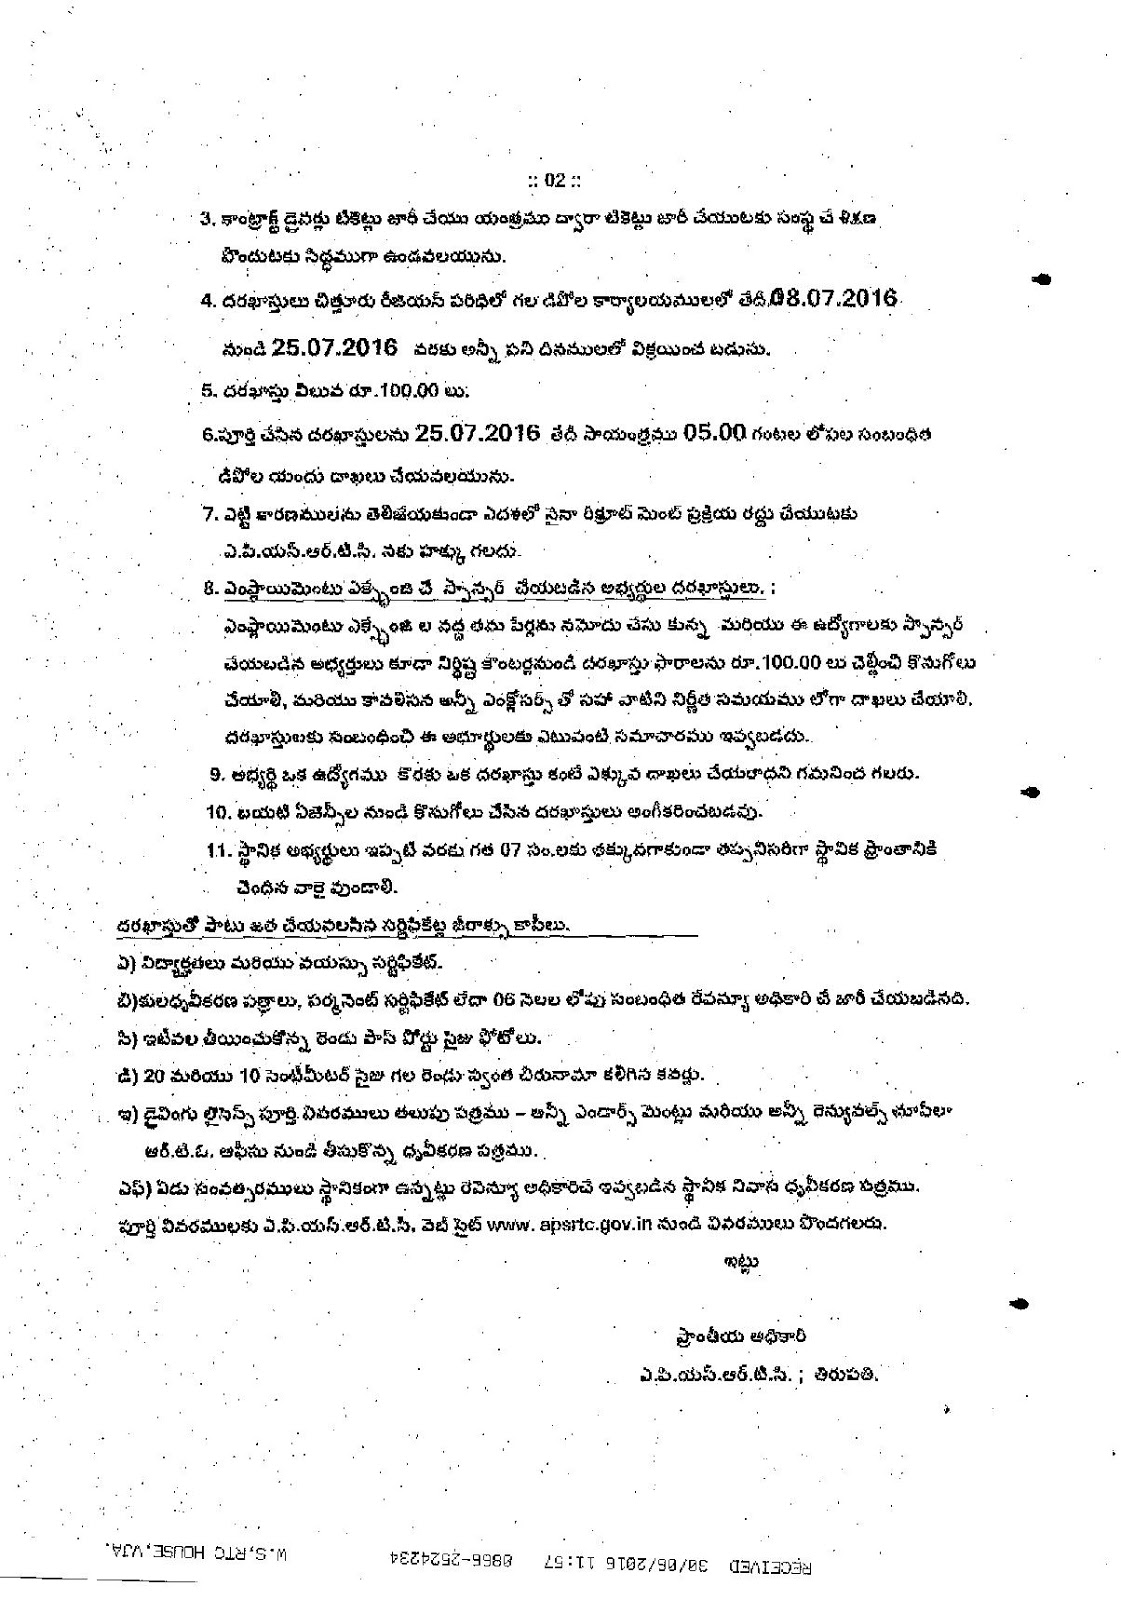 Tirupati APSRTC SC/ ST Backlog Posts Recruitment 2016 APSRTC SC/ ST Backlog Vacancies Recruitment 2016 Chittor Tirupati Region APSRTC Regional Manager invites applications from SC/ ST candidates for the recruitment 196 Driver Posts  Conductor posts education Qualification age limit required certificated documents salary application fee complete guidelines how to apply for apsrtc sc st backlog posts in online instruction given below.